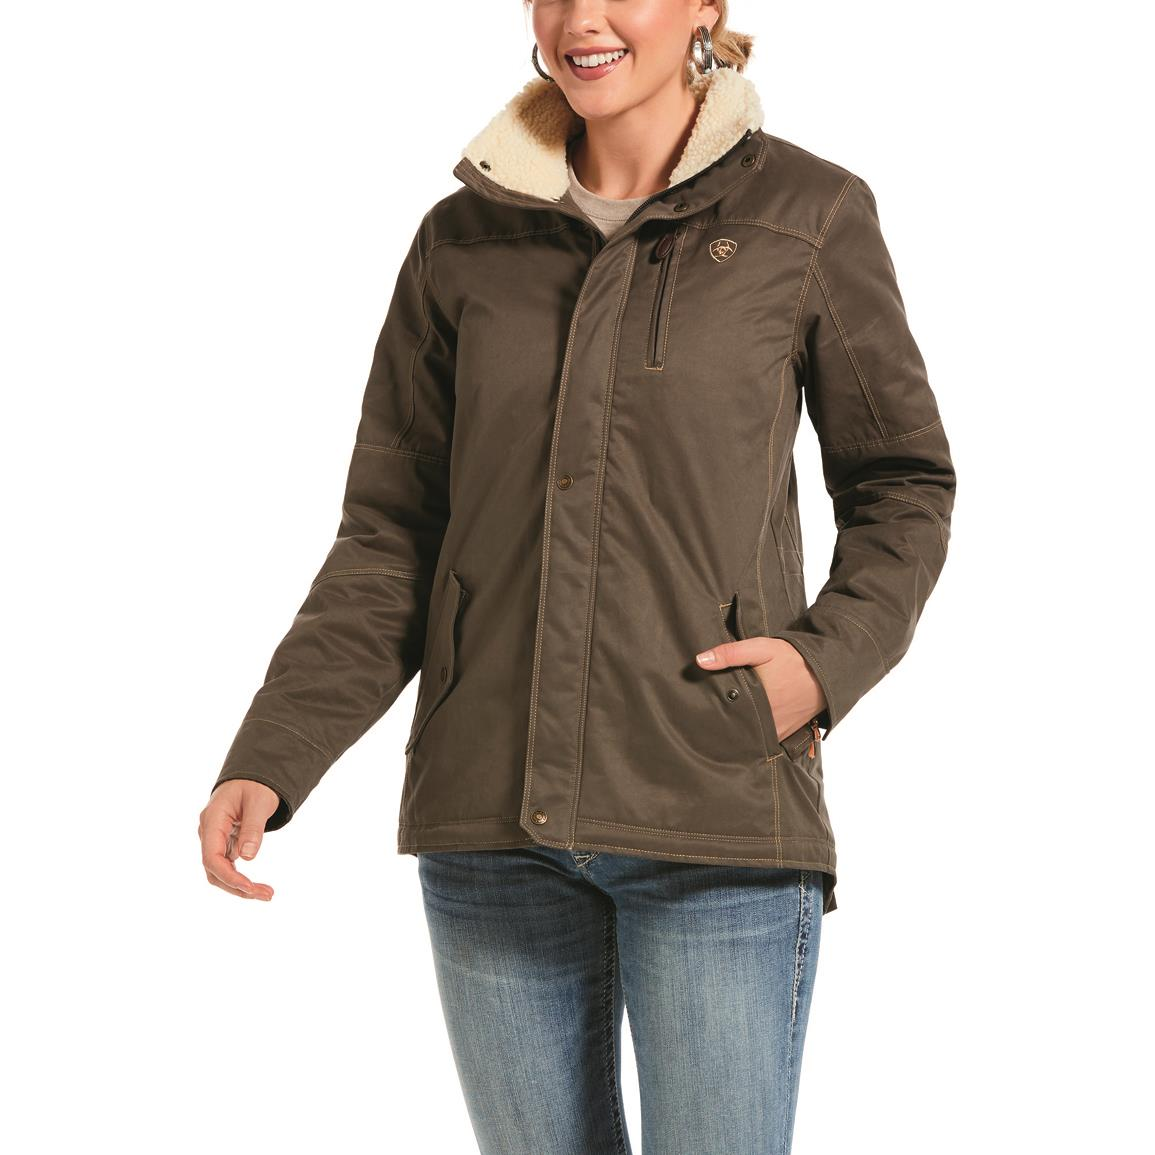 Ariat Women's R.E.A.L. Grizzly Jacket